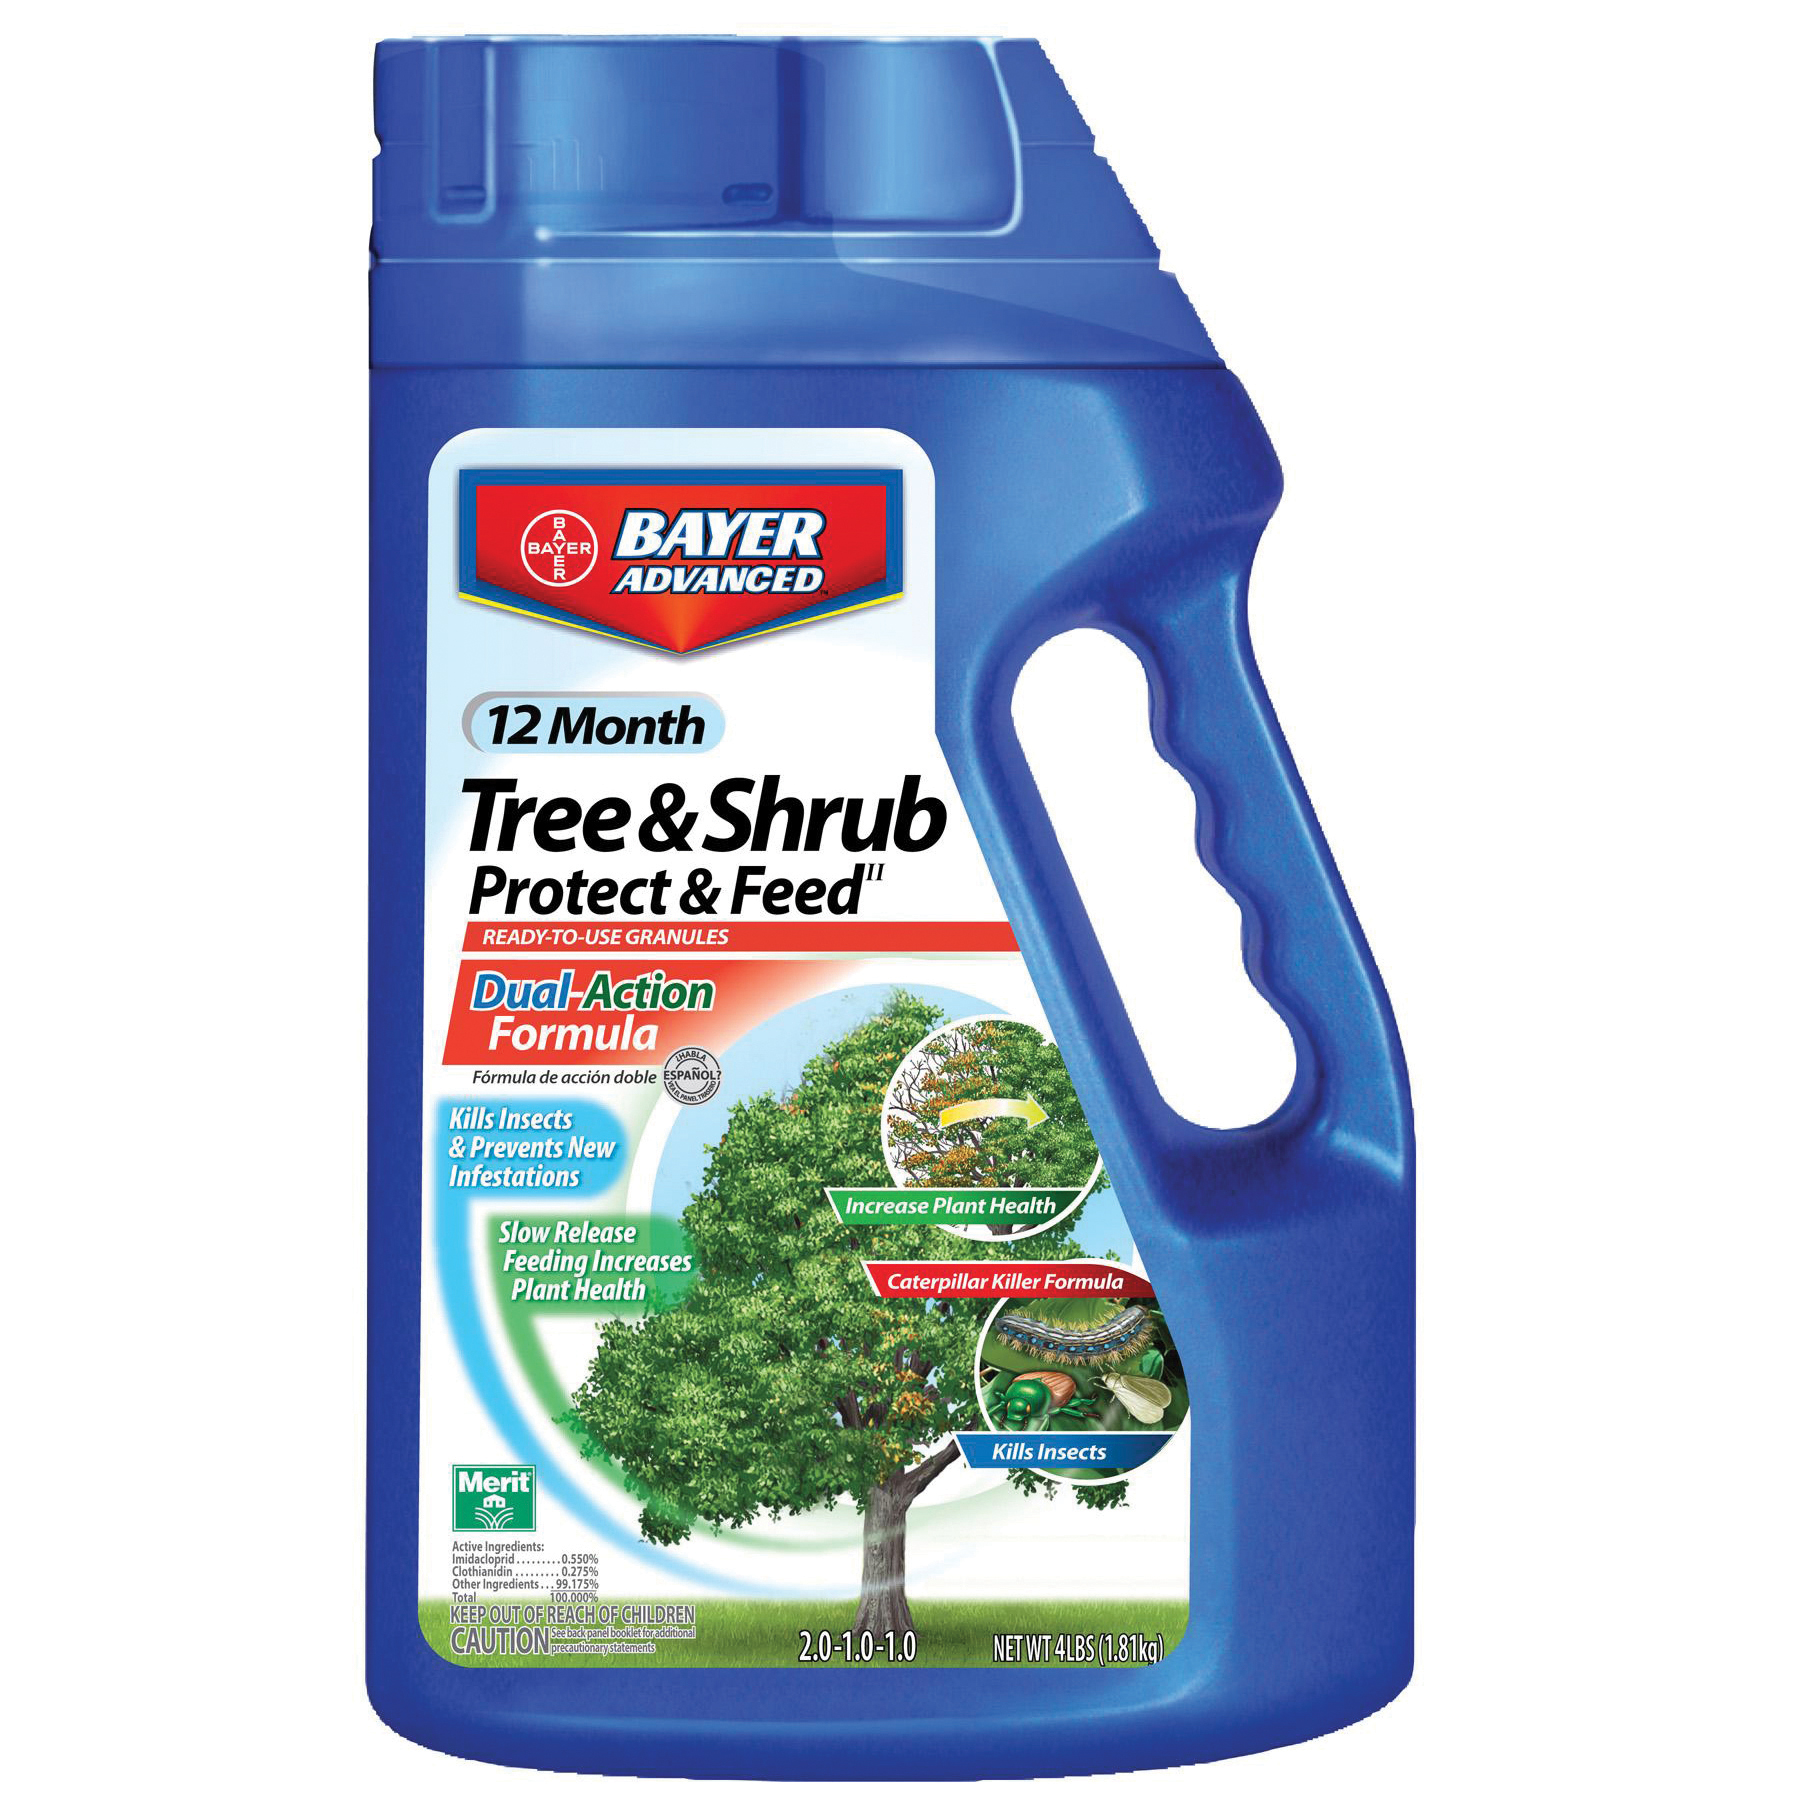 Bayer 4 12 Month Tree Amp Shrub Protect Amp Feed Gran Lawn Amp Garden Outdoor Tools Amp Supplies